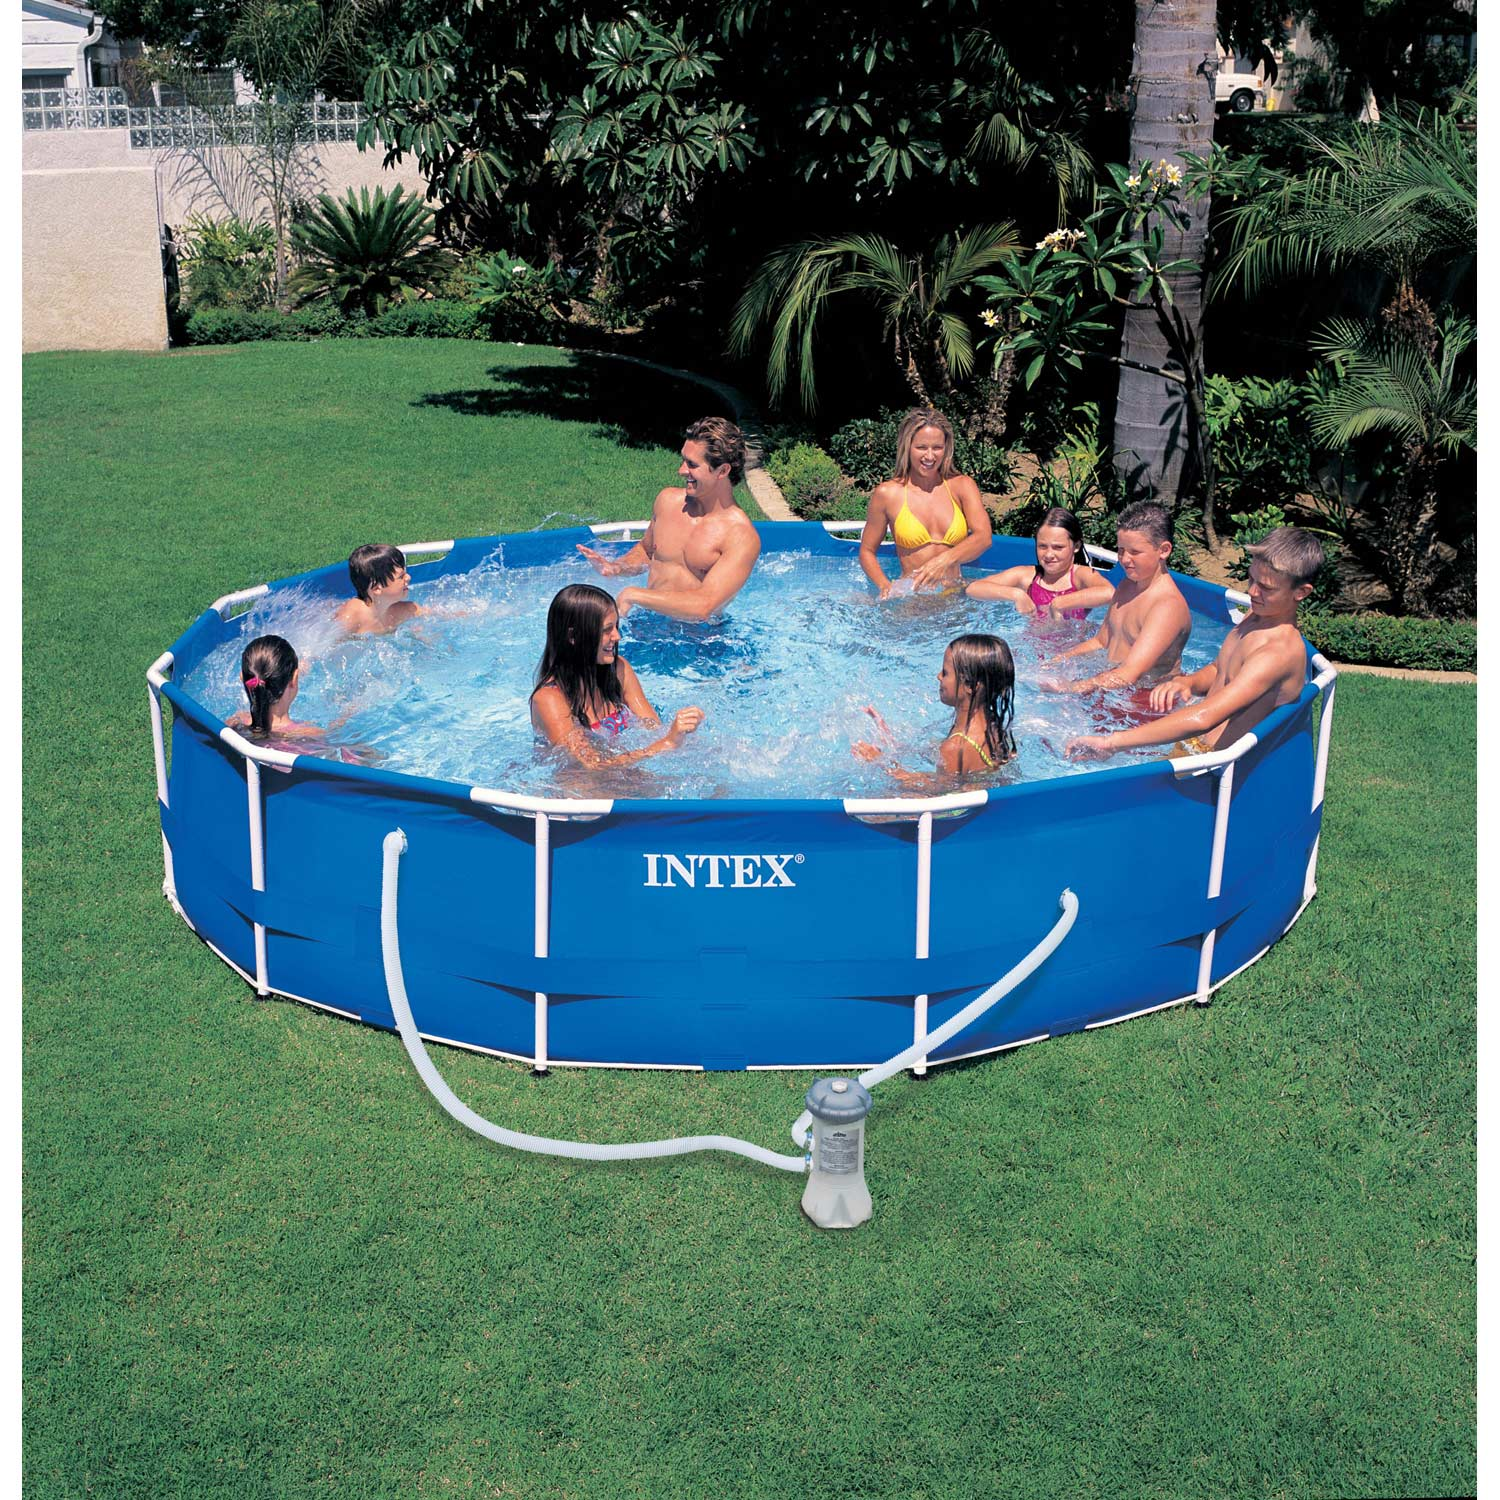 Piscine hors sol autoportante tubulaire metal frame intex for Chauffage piscine hors sol intex